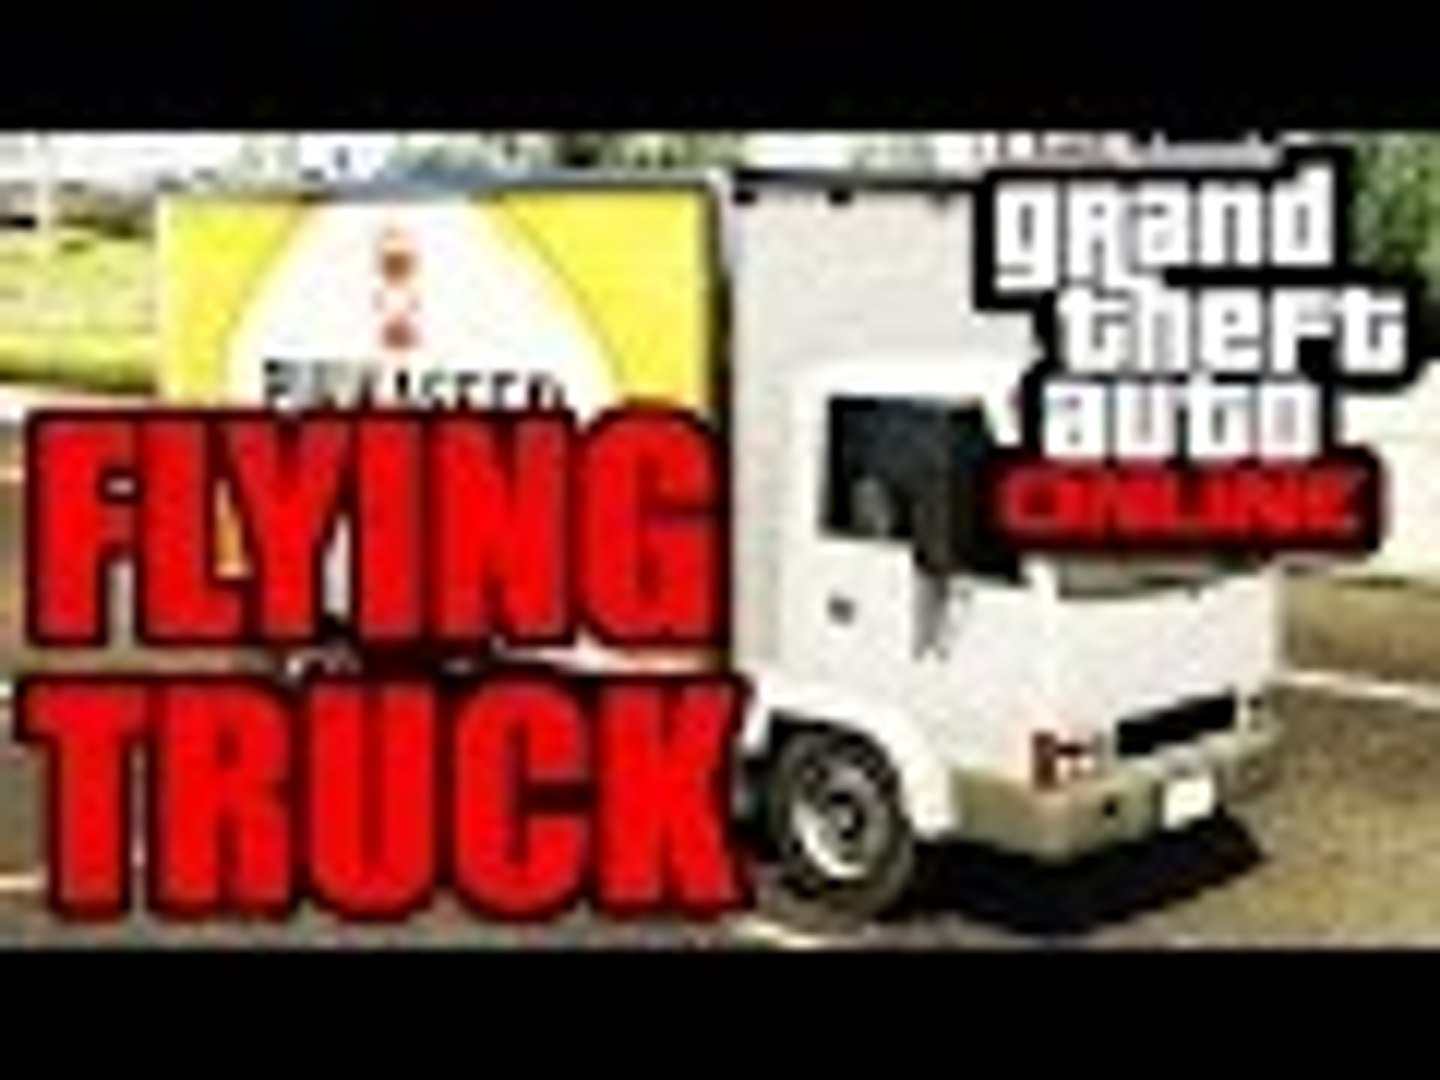 GTA 5 Online FLYING Truck Glitch After patch 1.29 1.26 - GTA 5 (Xbox One, PS4, PS3, Xbox 360 & P